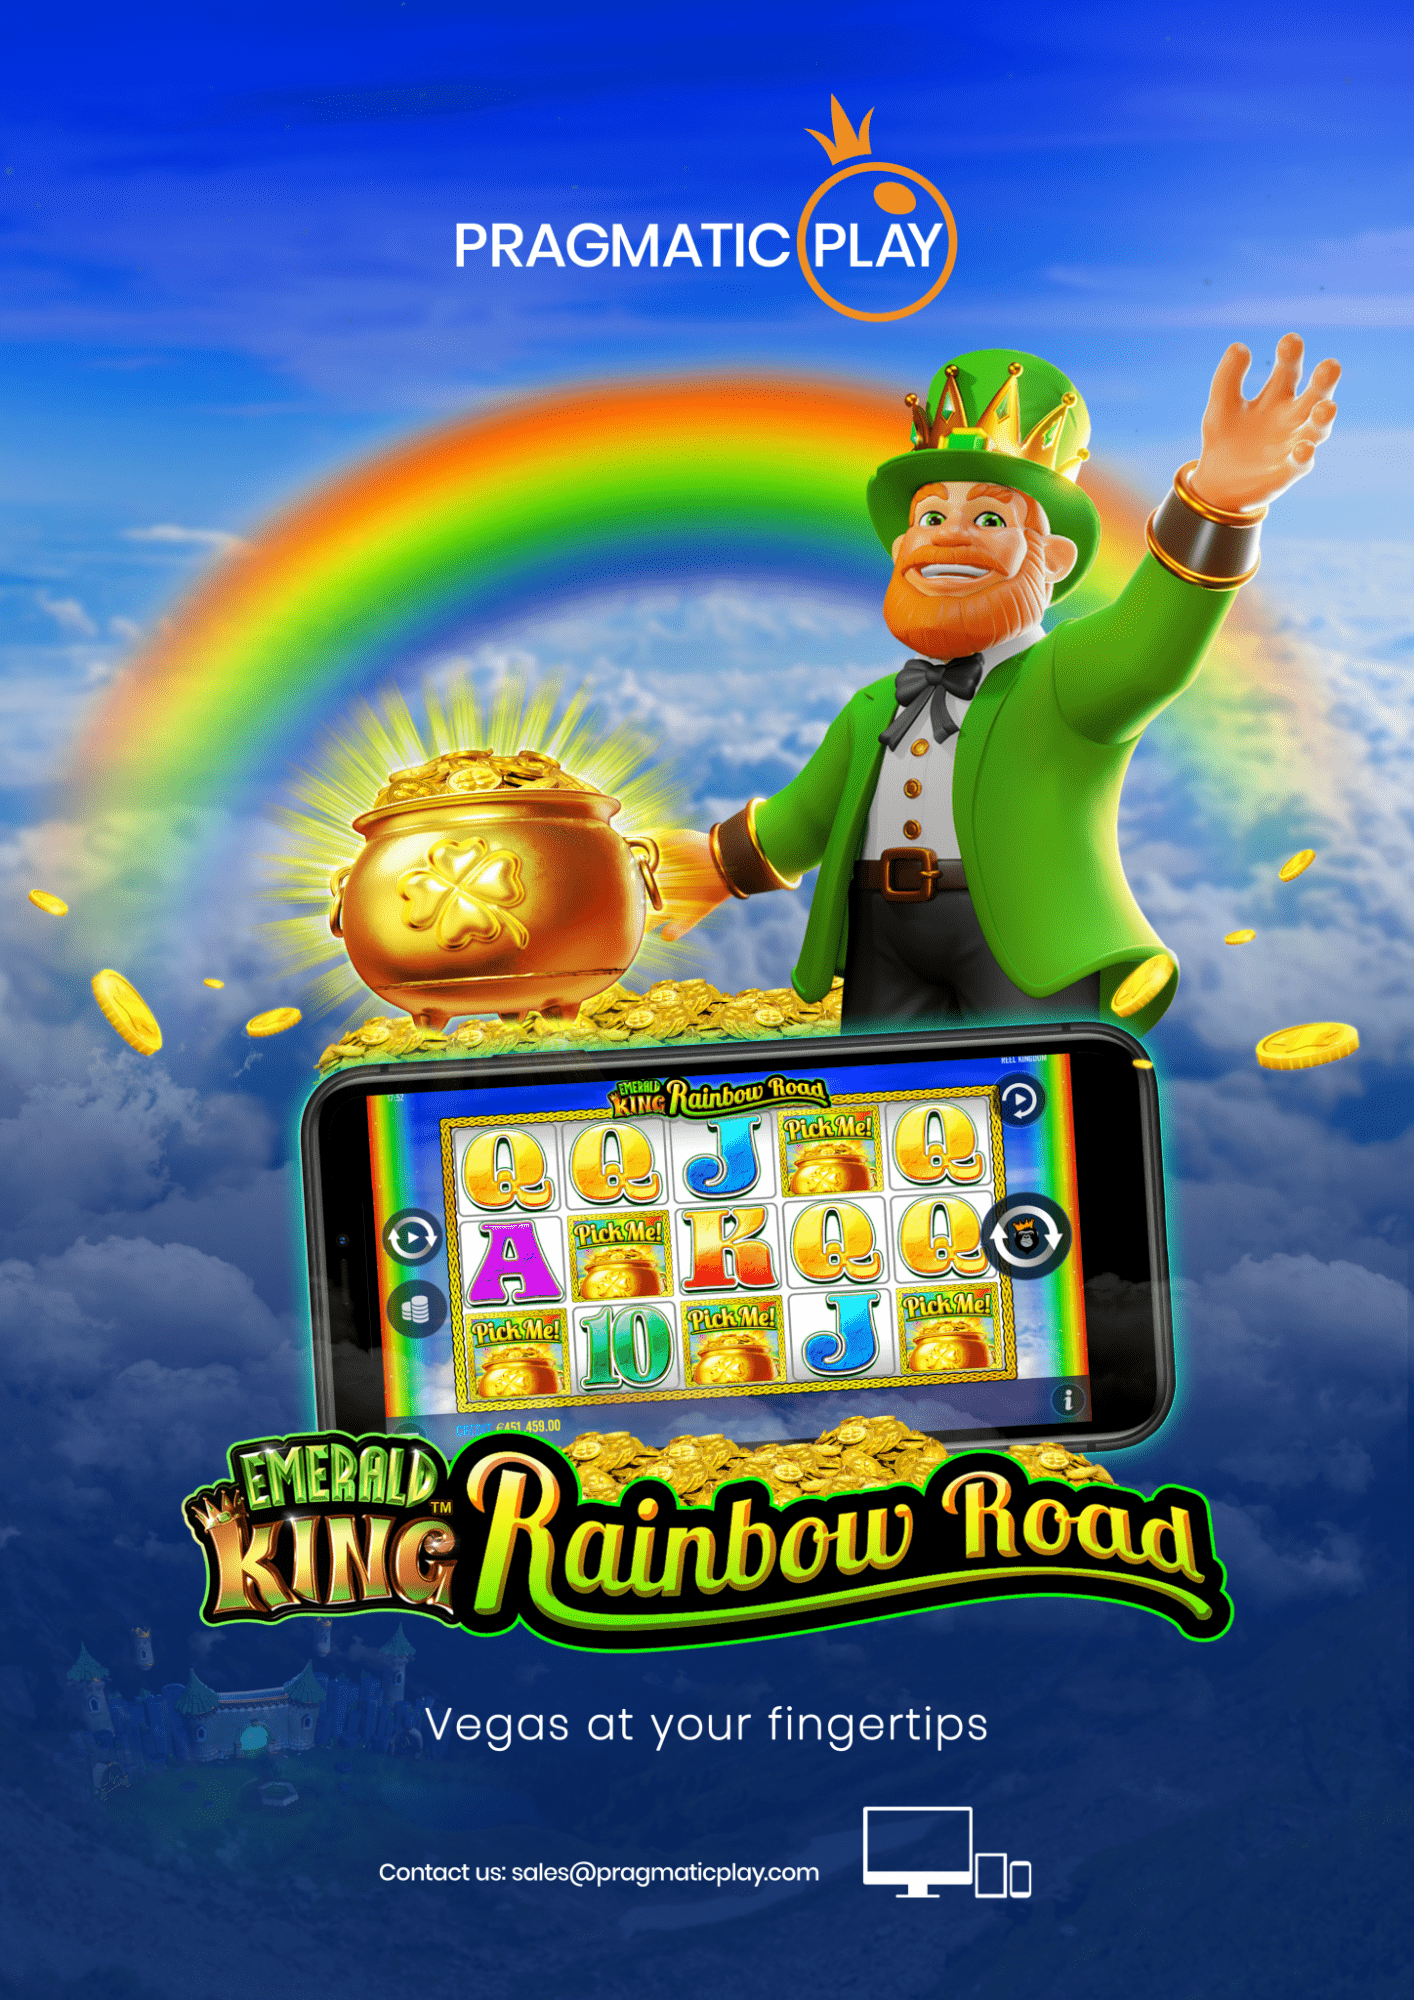 Emerald King Rainbow Road Pragmatic Play